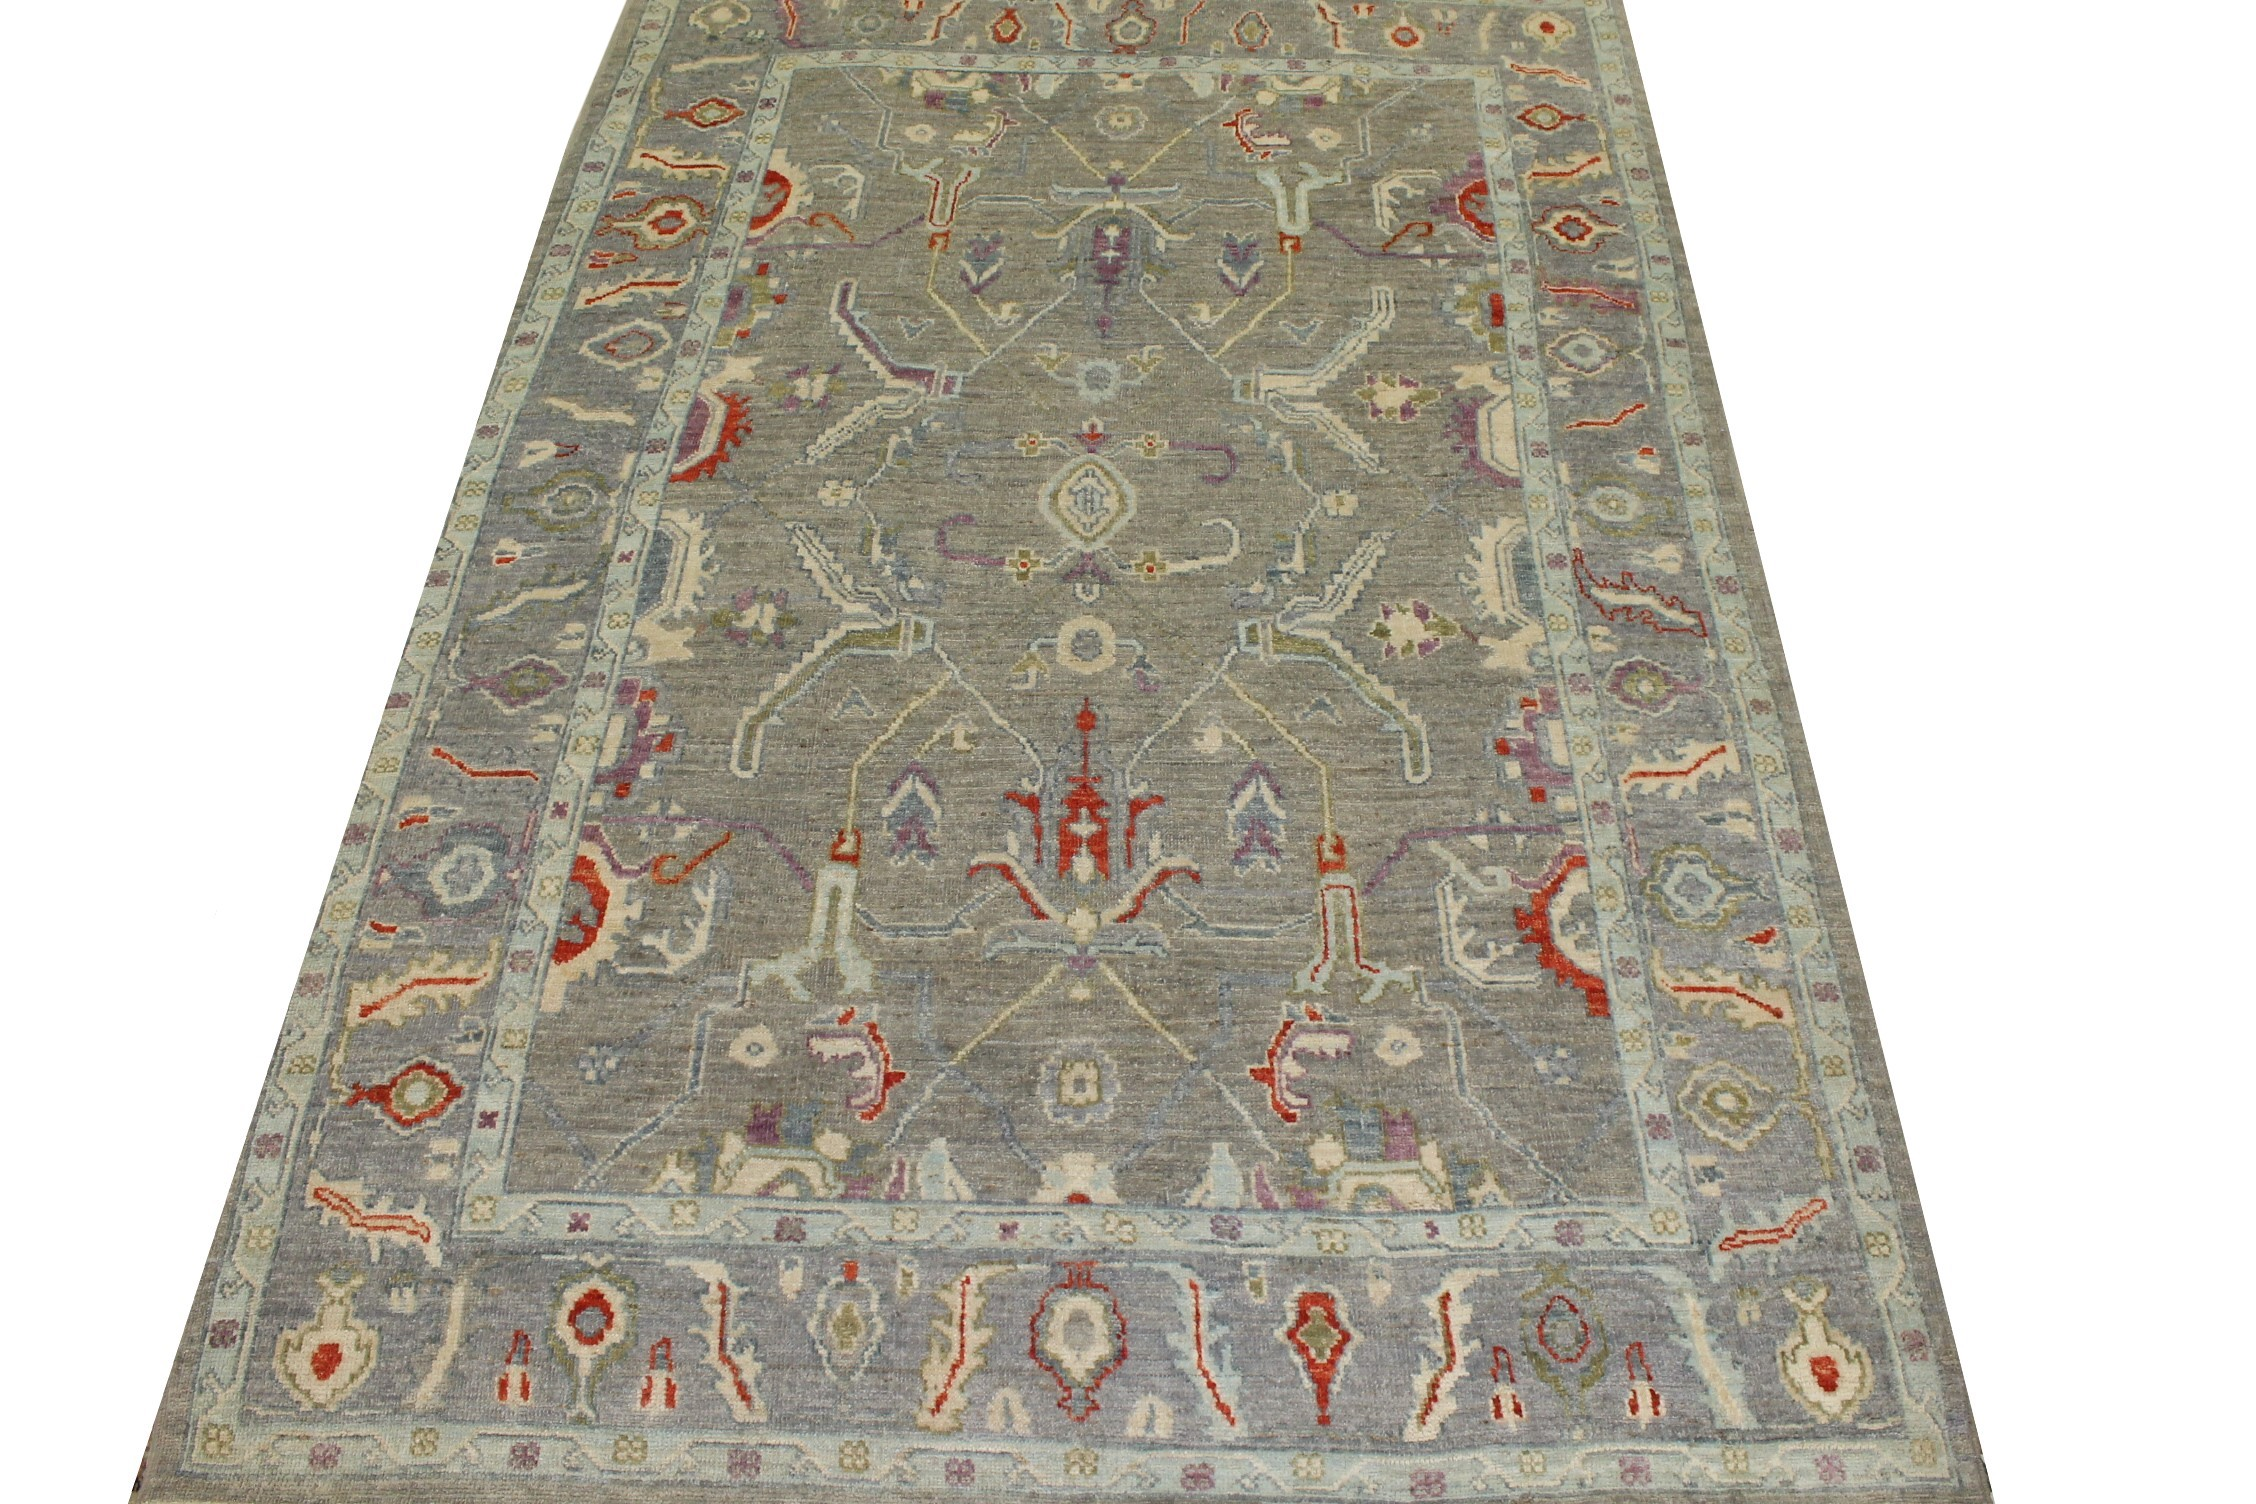 6x9 Oushak Hand Knotted Wool Area Rug - MR023373